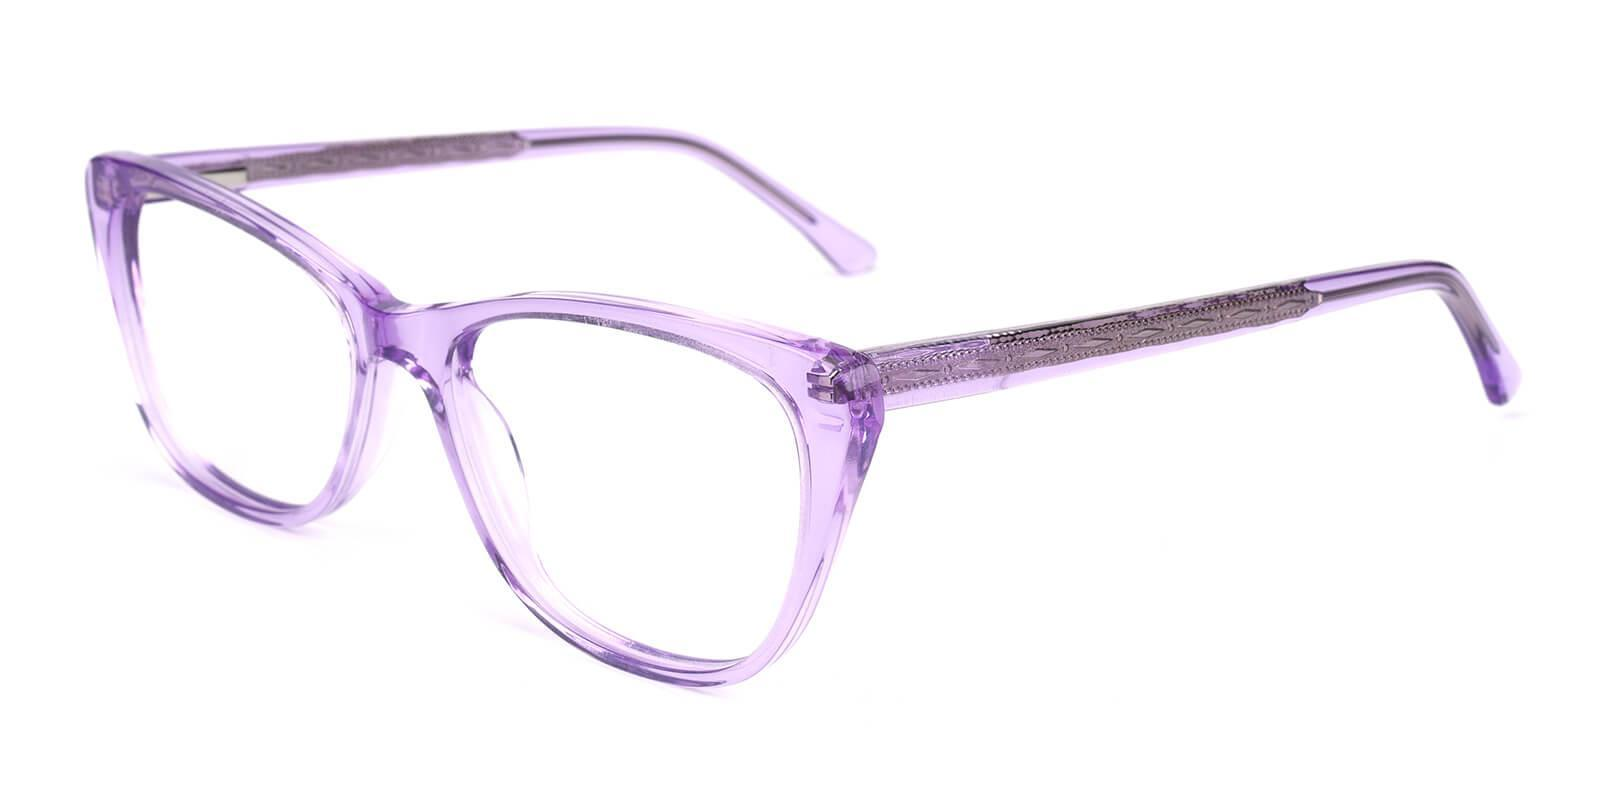 Yuke Purple Acetate Eyeglasses , SpringHinges , UniversalBridgeFit Frames from ABBE Glasses